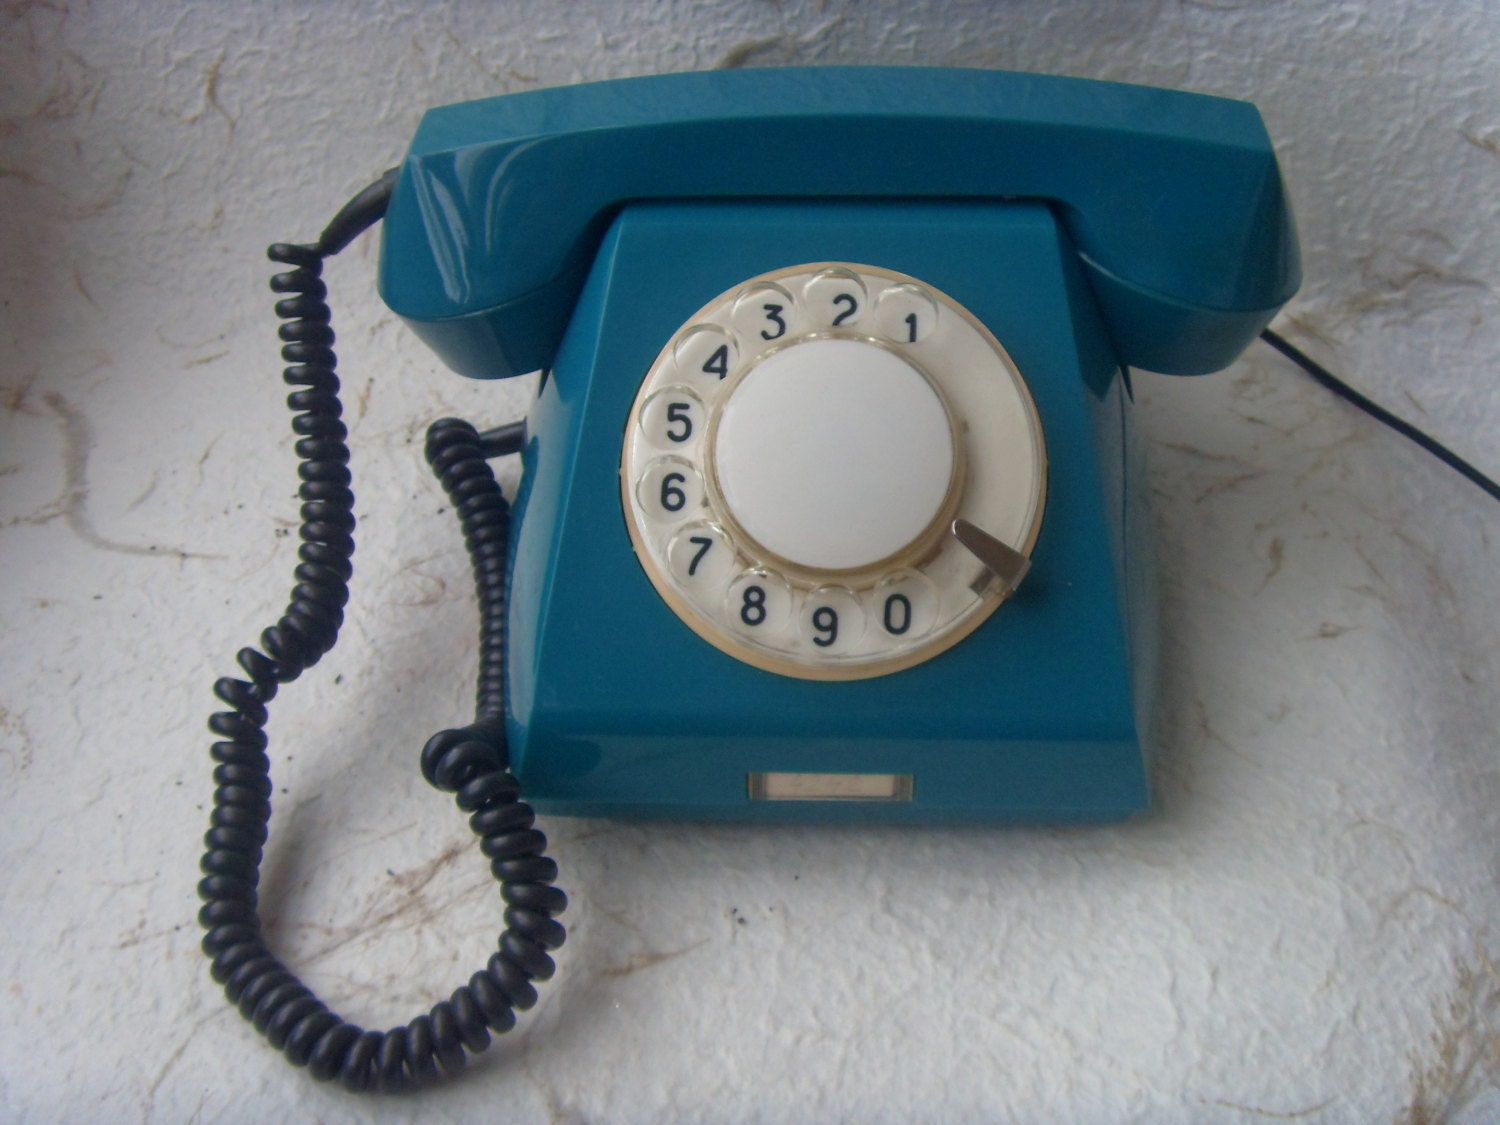 Soviet VintageAquamarine Rotary Telephone Made in USSR in 1968 - Astra9